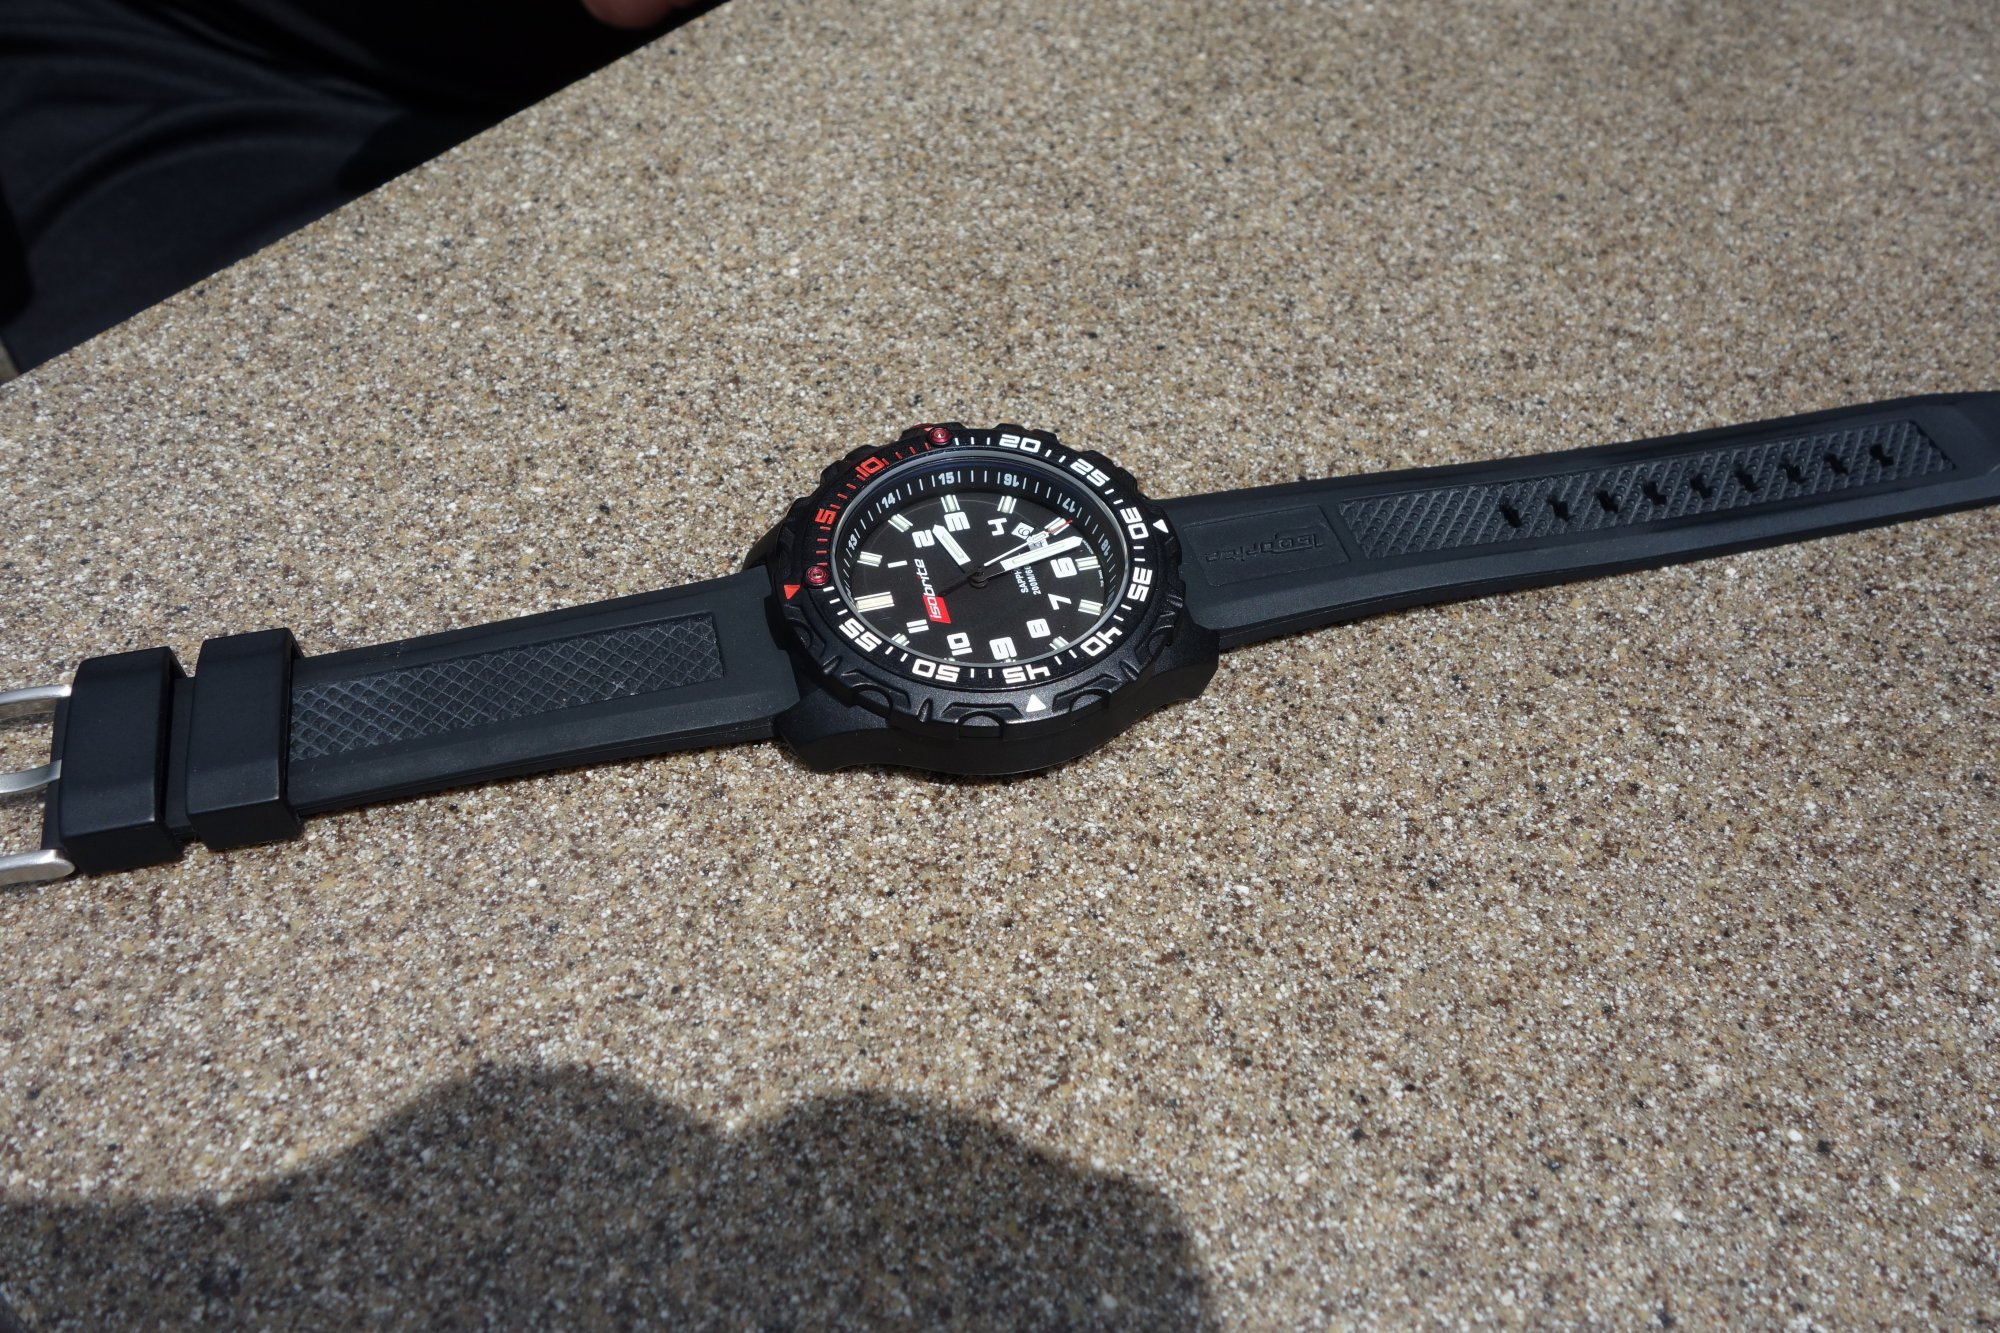 ArmourLite IsoBrite Tactical Watch Diving Watch T100 Tritium H3 Illumination Miami David Crane DefenseReview.com DR 7 ArmourLite IsoBrite Hard Use Tactical Watch/Diving Watch with T100 Tritium Illumination for Military and Law Enforcement Tactical Operations, Maritime Operations and Civilian Tactical Shooting (Video!)